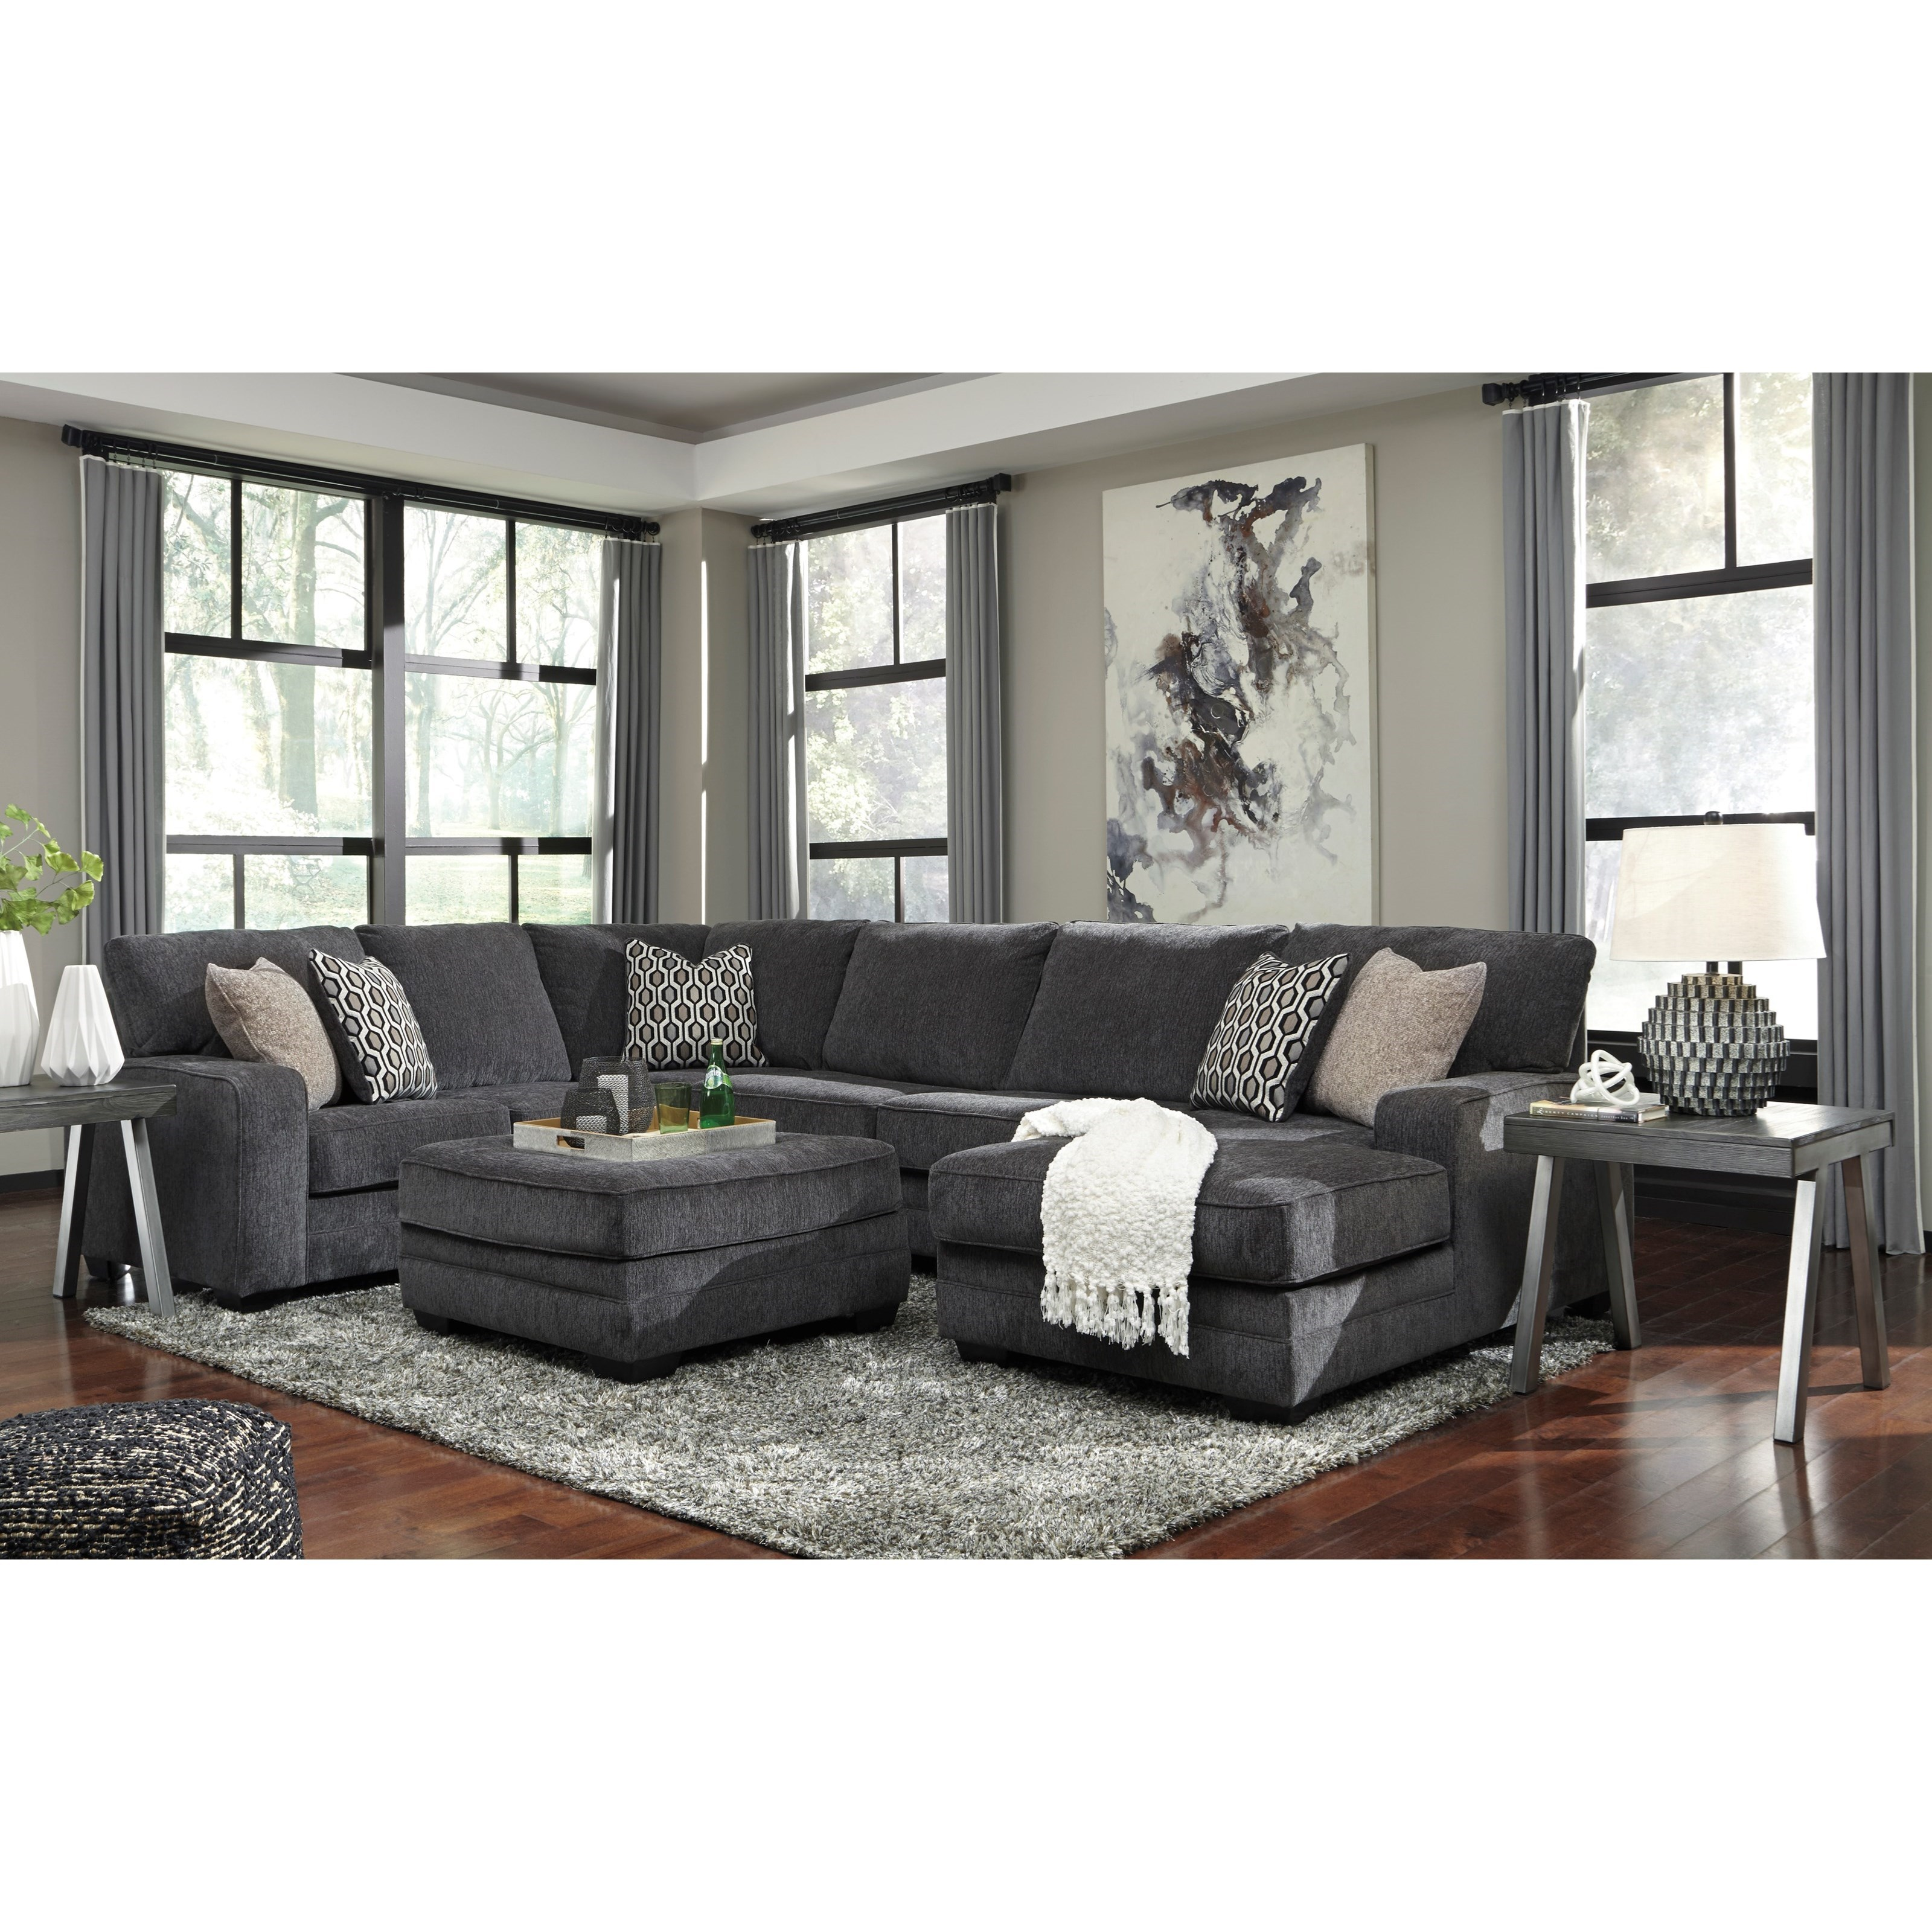 Tracling 2pc Sectional and ottoman by Benchcraft at Value City Furniture